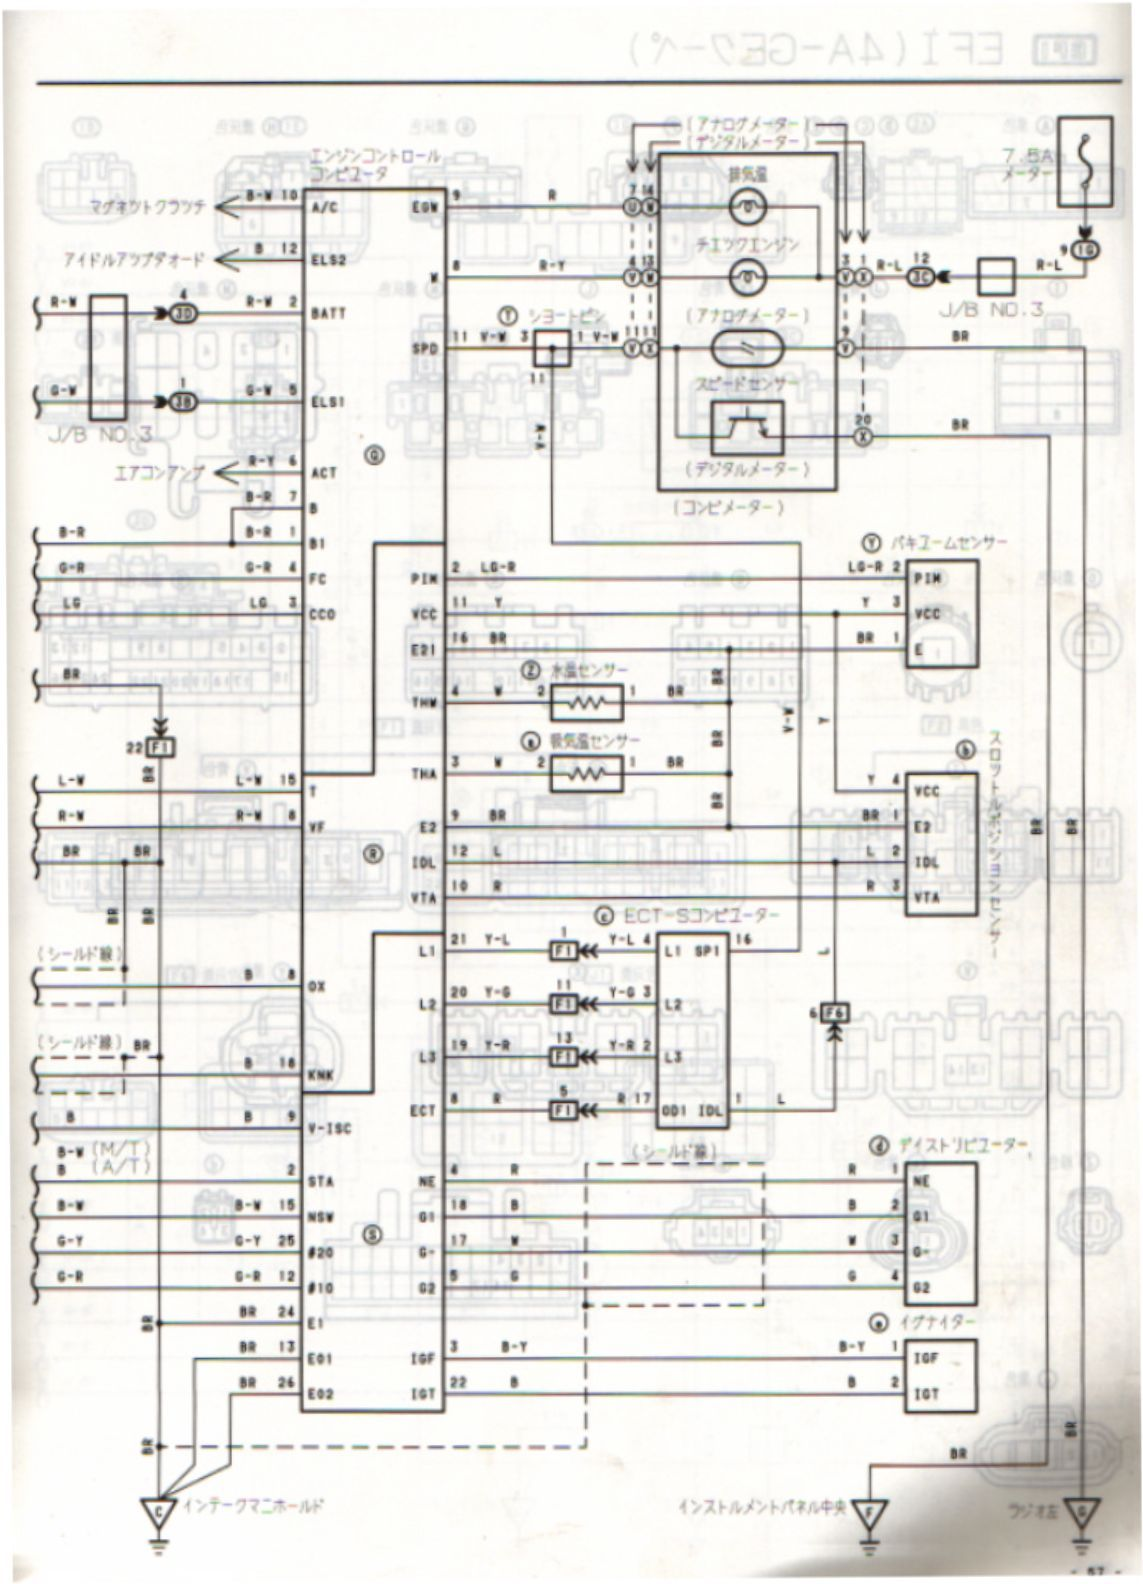 wiring diagram pdf blacktop toyota corolla engine bp ecu ae111 new best of [ 1143 x 1584 Pixel ]